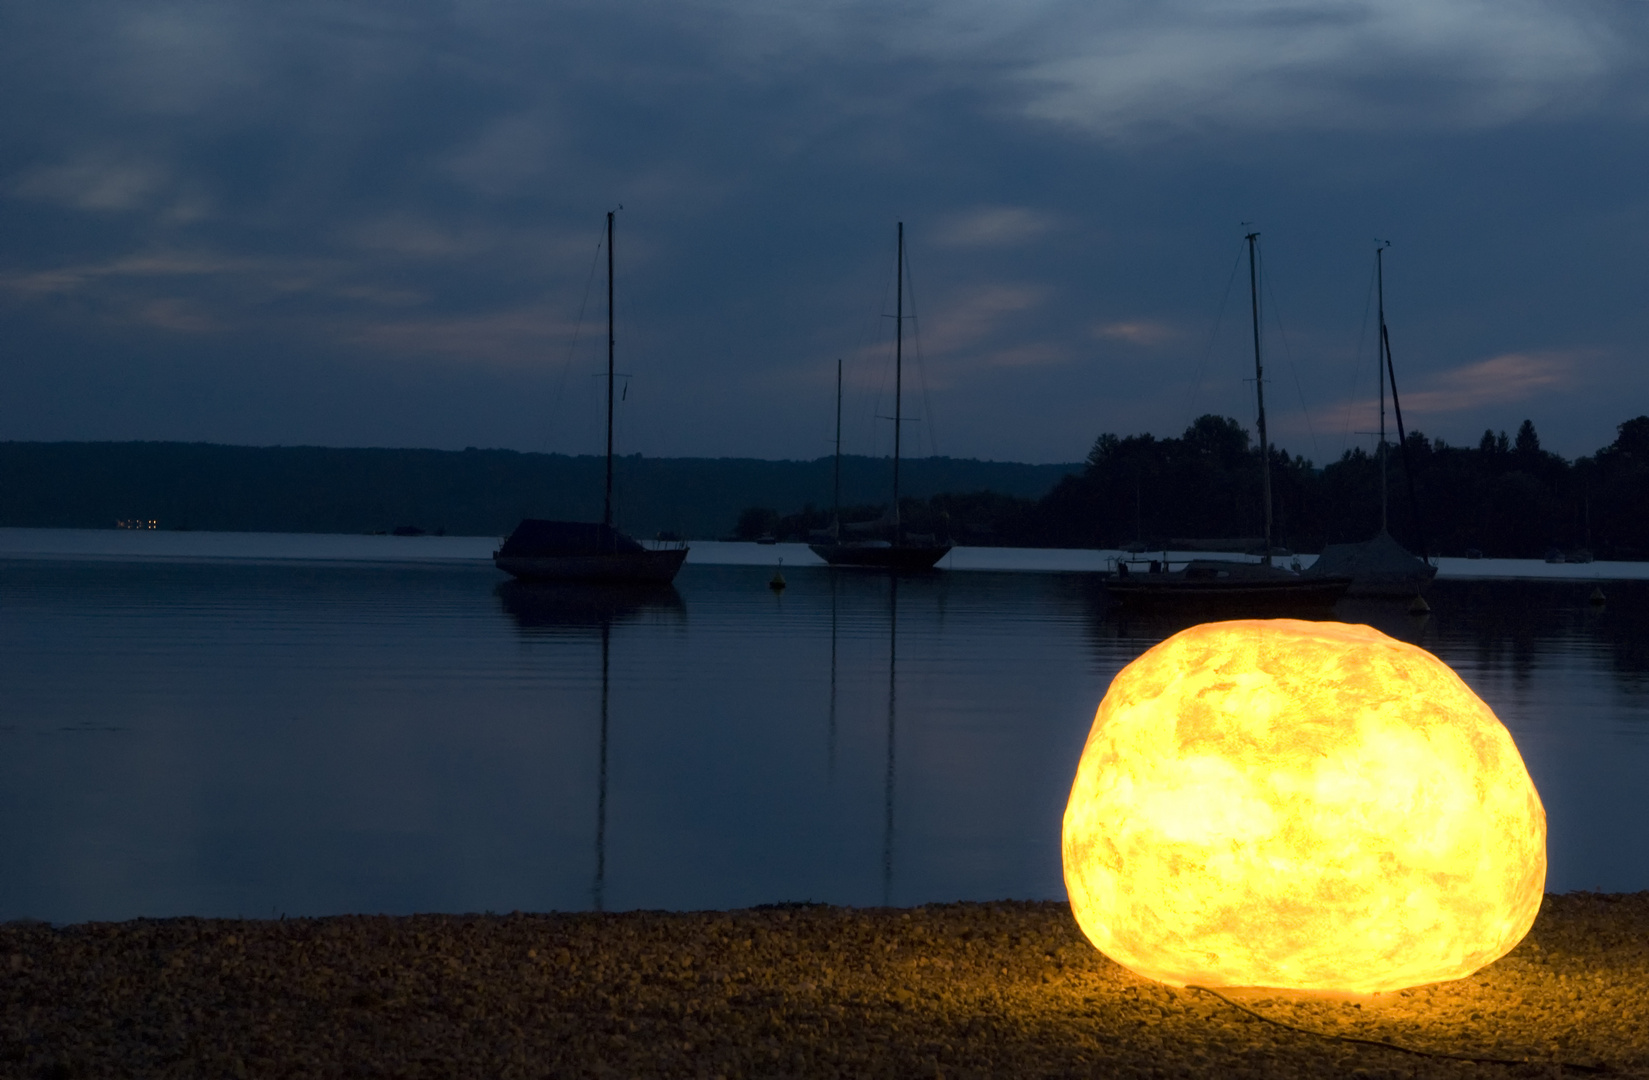 Lampe am See